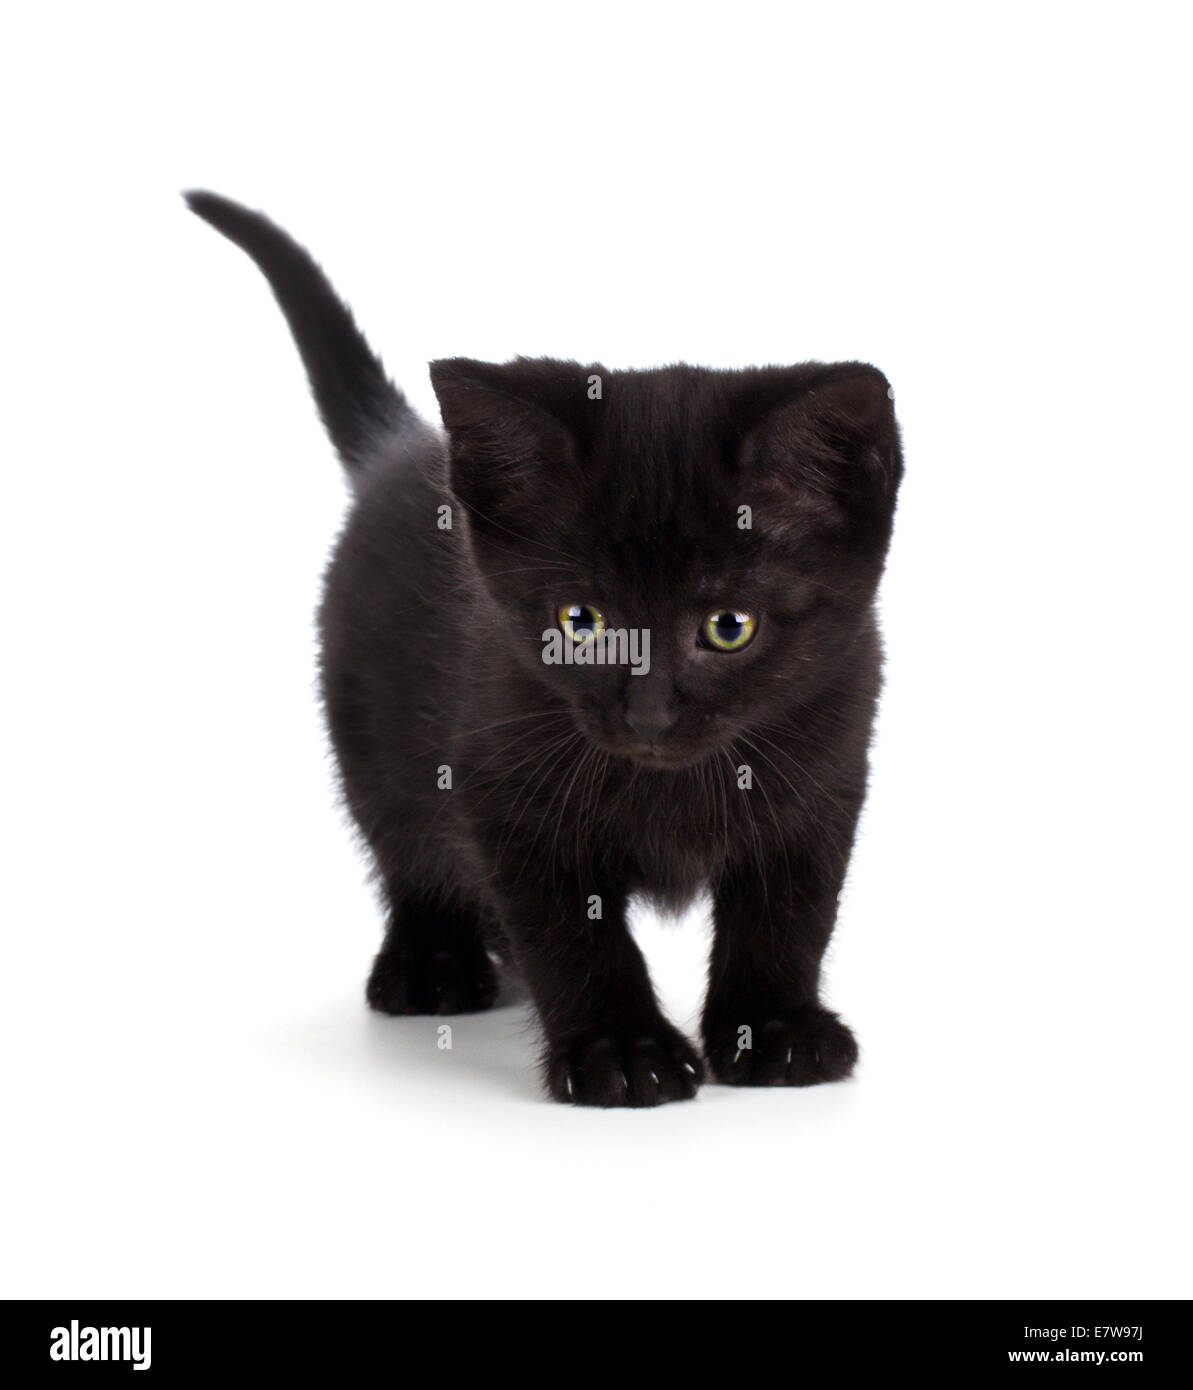 Cute Black Kitten With Green Eyes Isolated On White Stock Photo